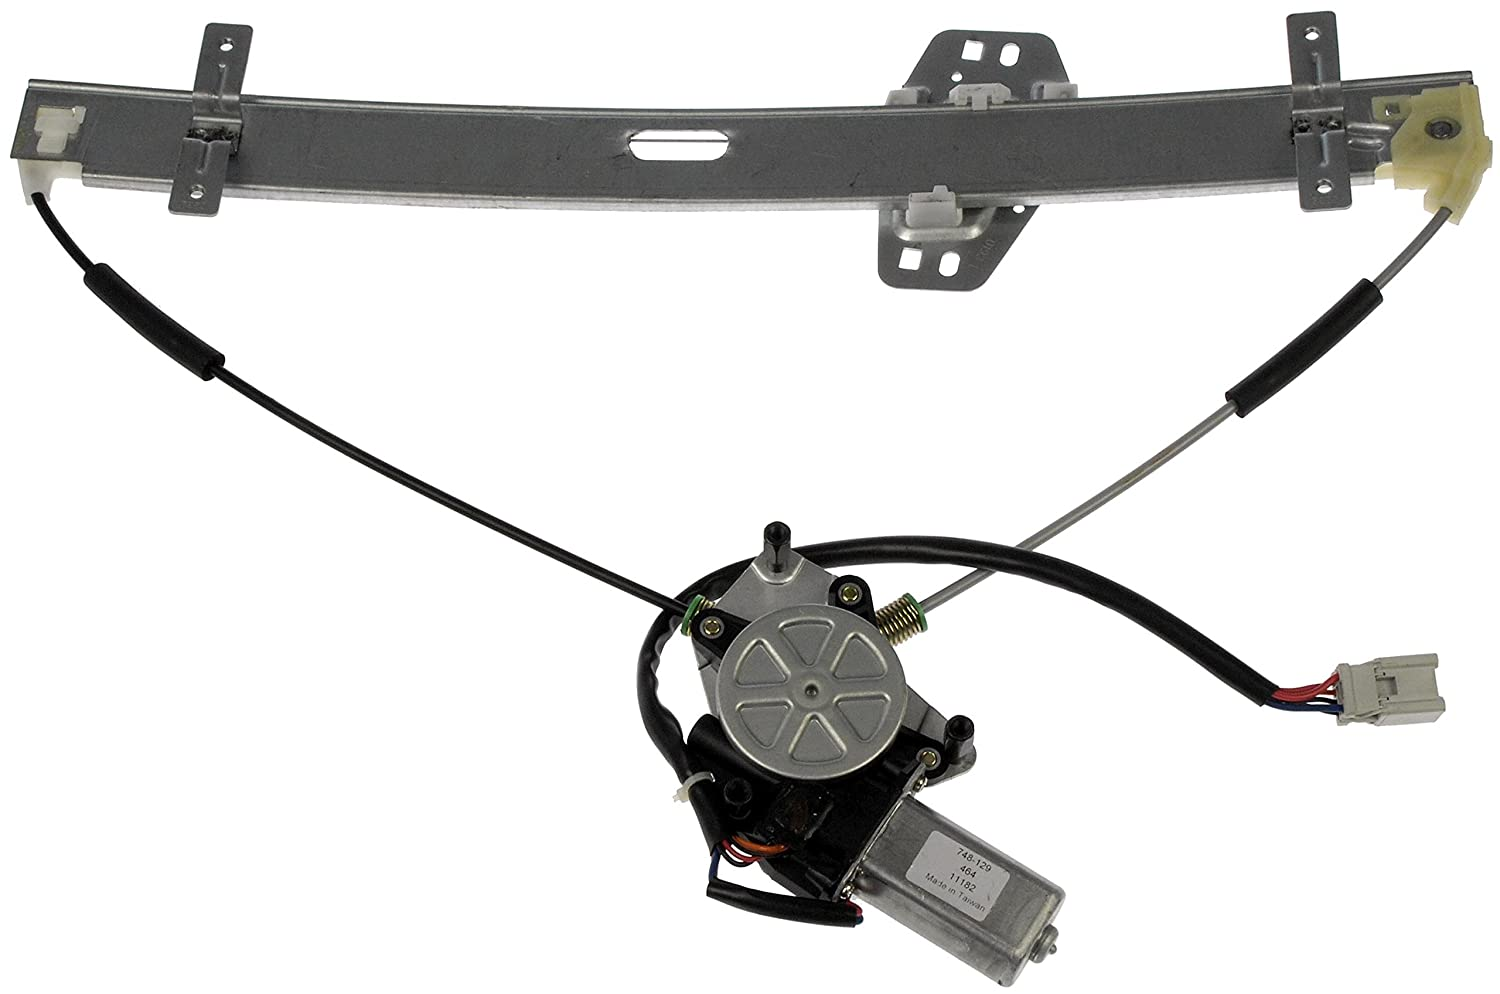 714DrpLyaKL._SL1500_ amazon com dorman 748 129 honda pilot front driver side power 2006 Honda Pilot Wiring Harness at creativeand.co